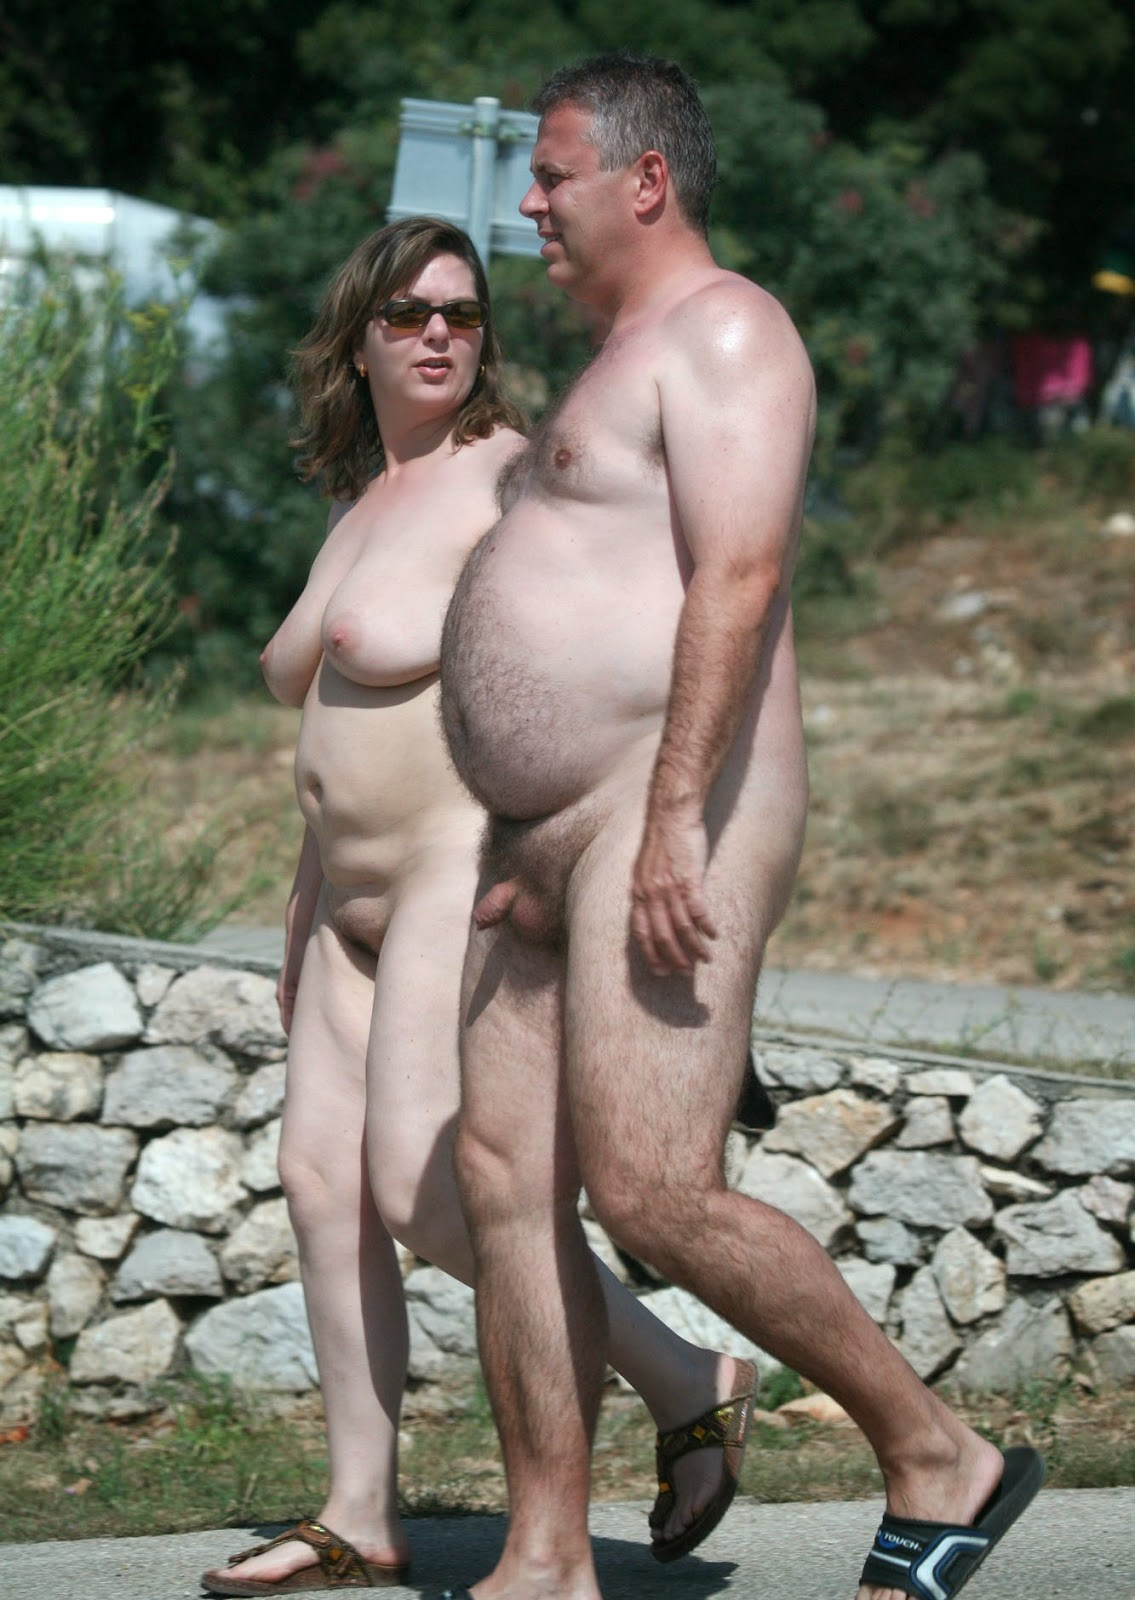 Photos De Couples Nus Matures